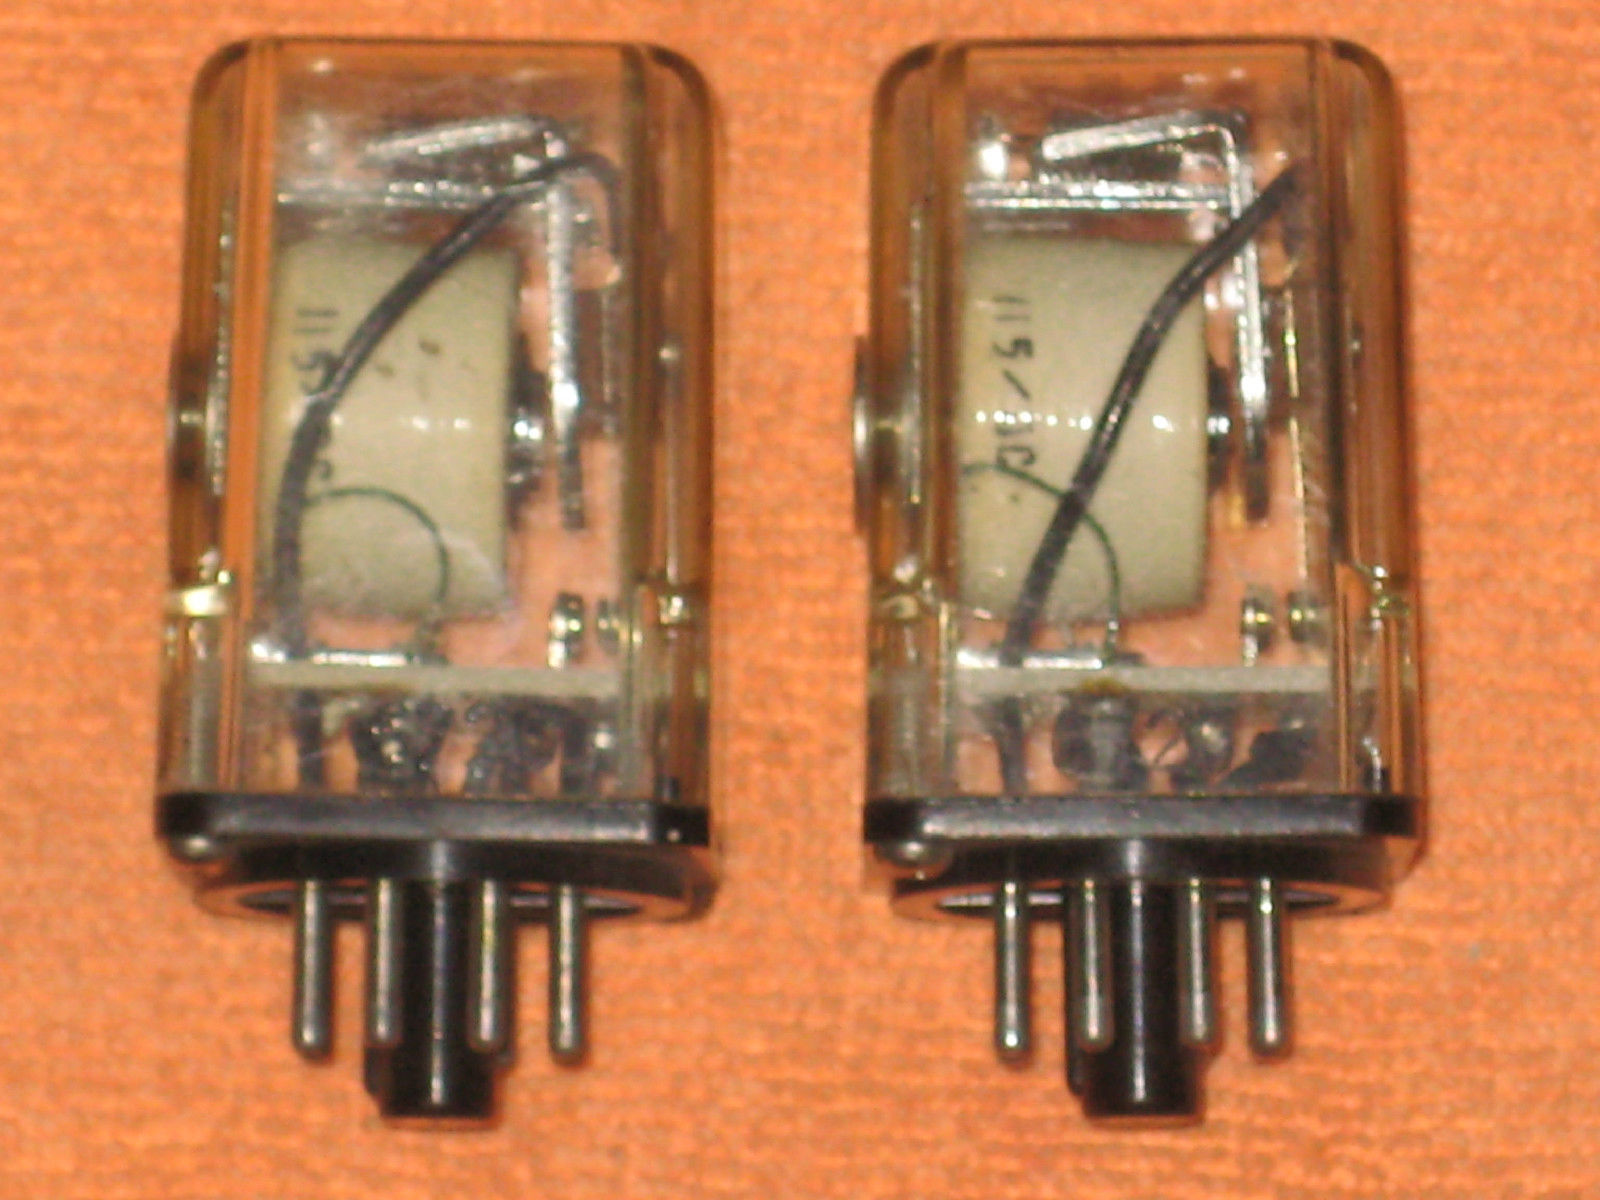 Vintage Relay, (one) Struthers-Dunn 214XAX48P, most likely 214XAX48P-115D